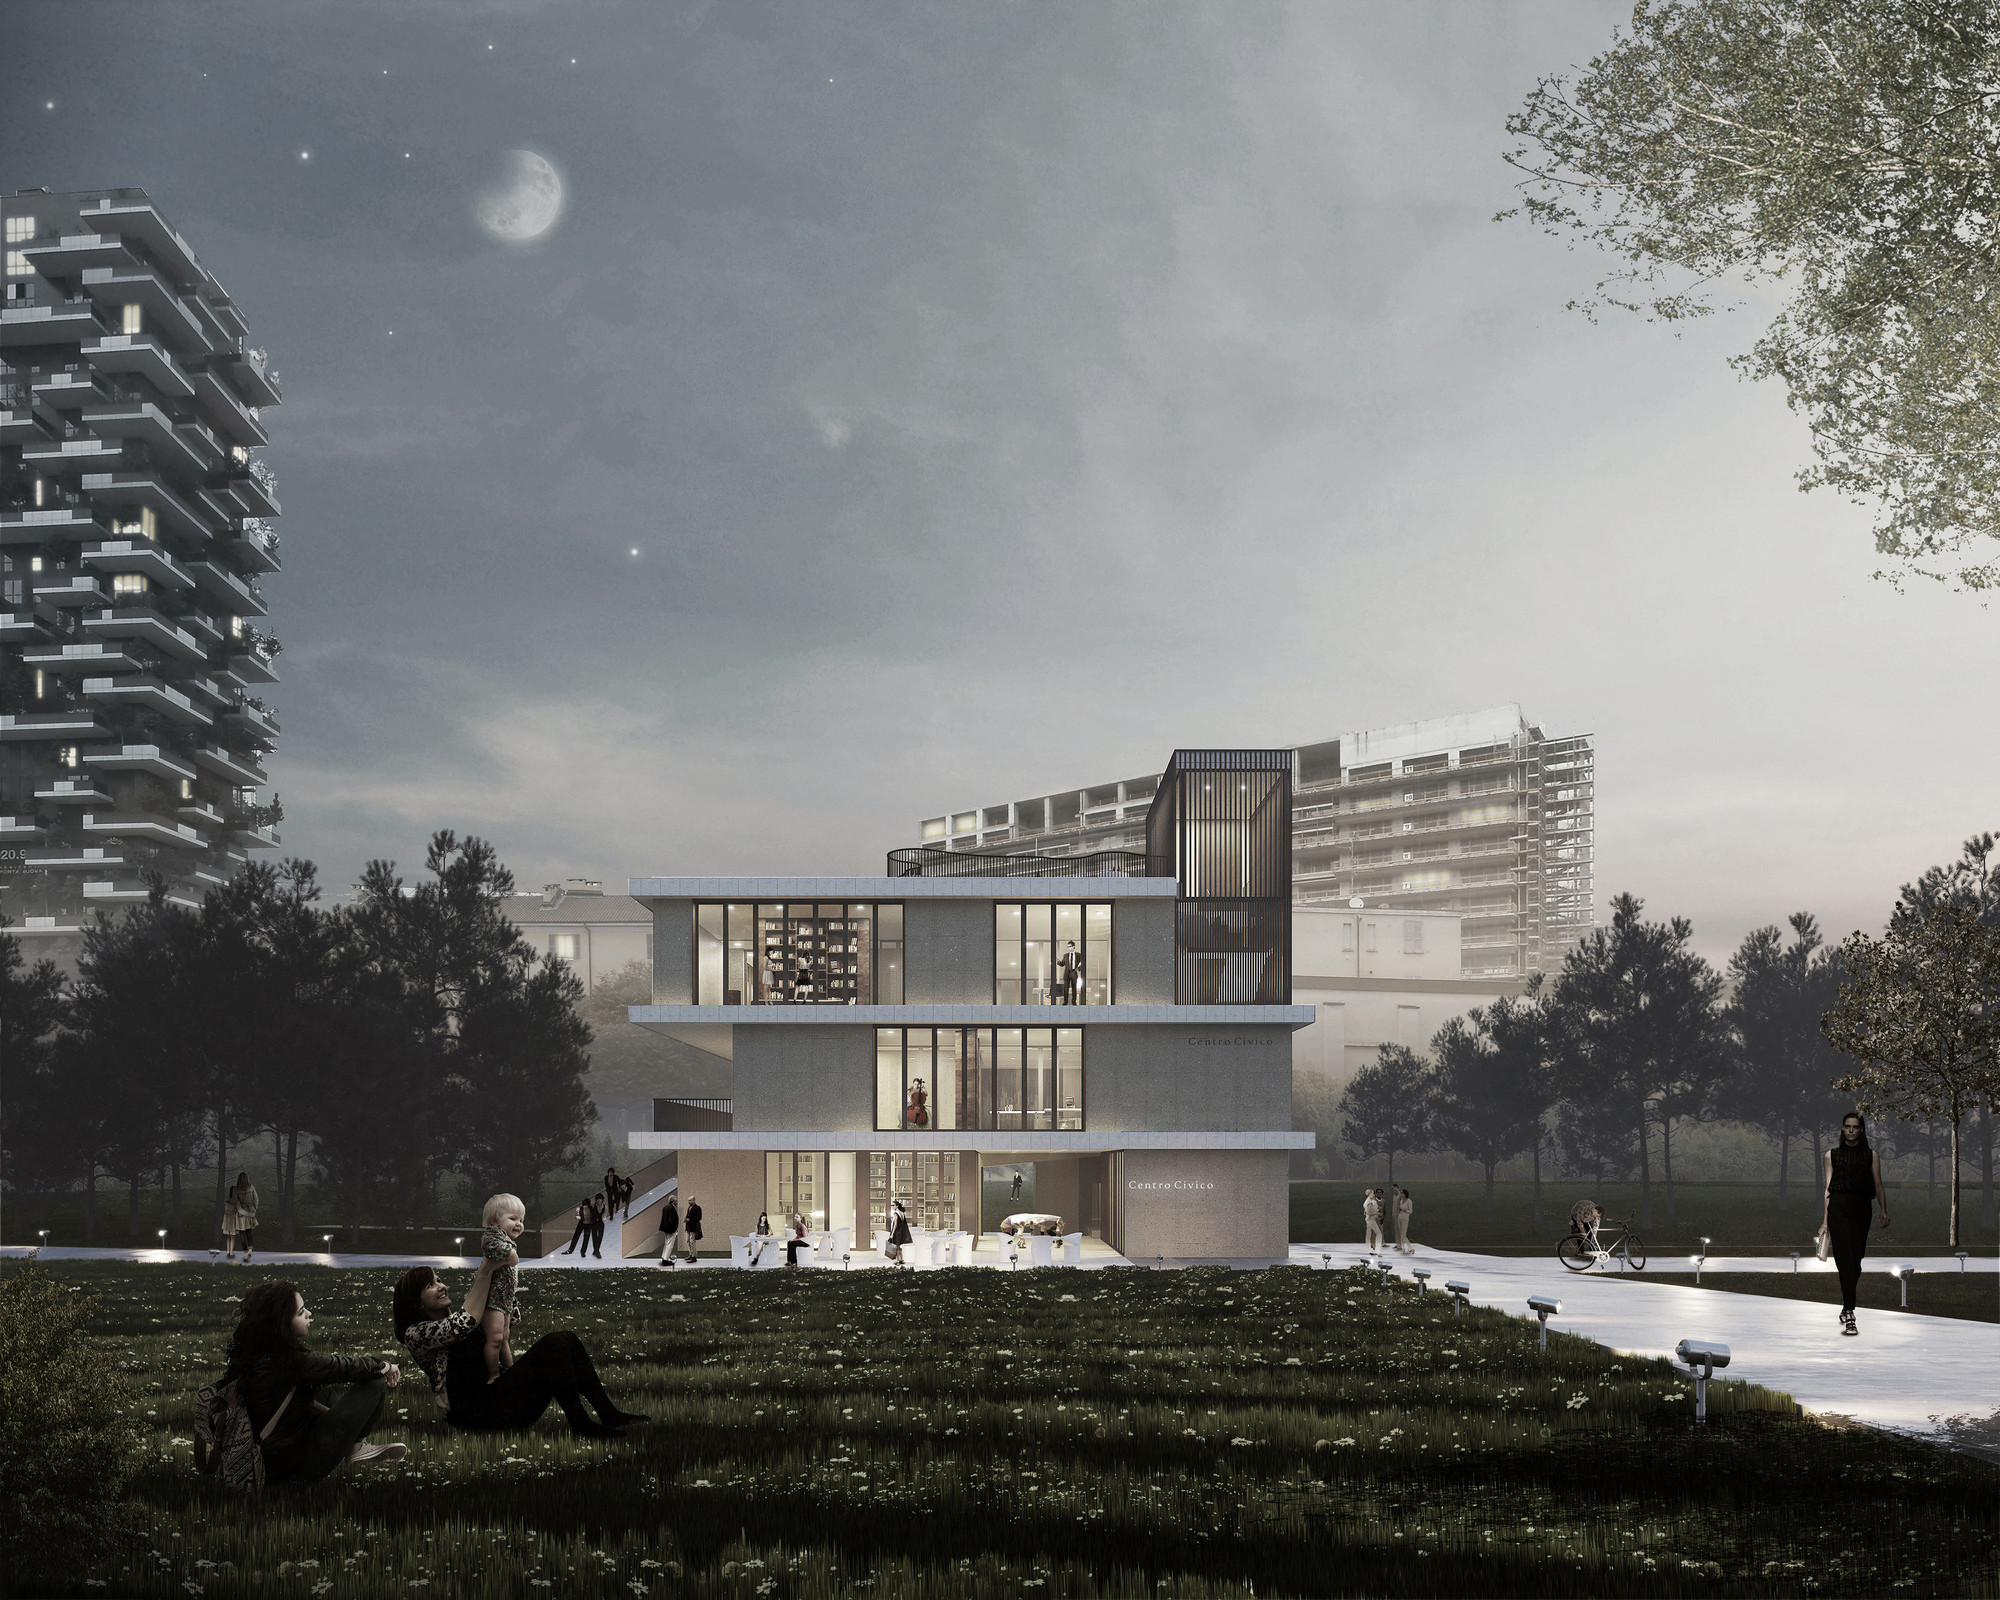 KM 429 Chosen to Design Isola Garibaldi Civic Center in Milan, Courtesy of KM 429 architecture